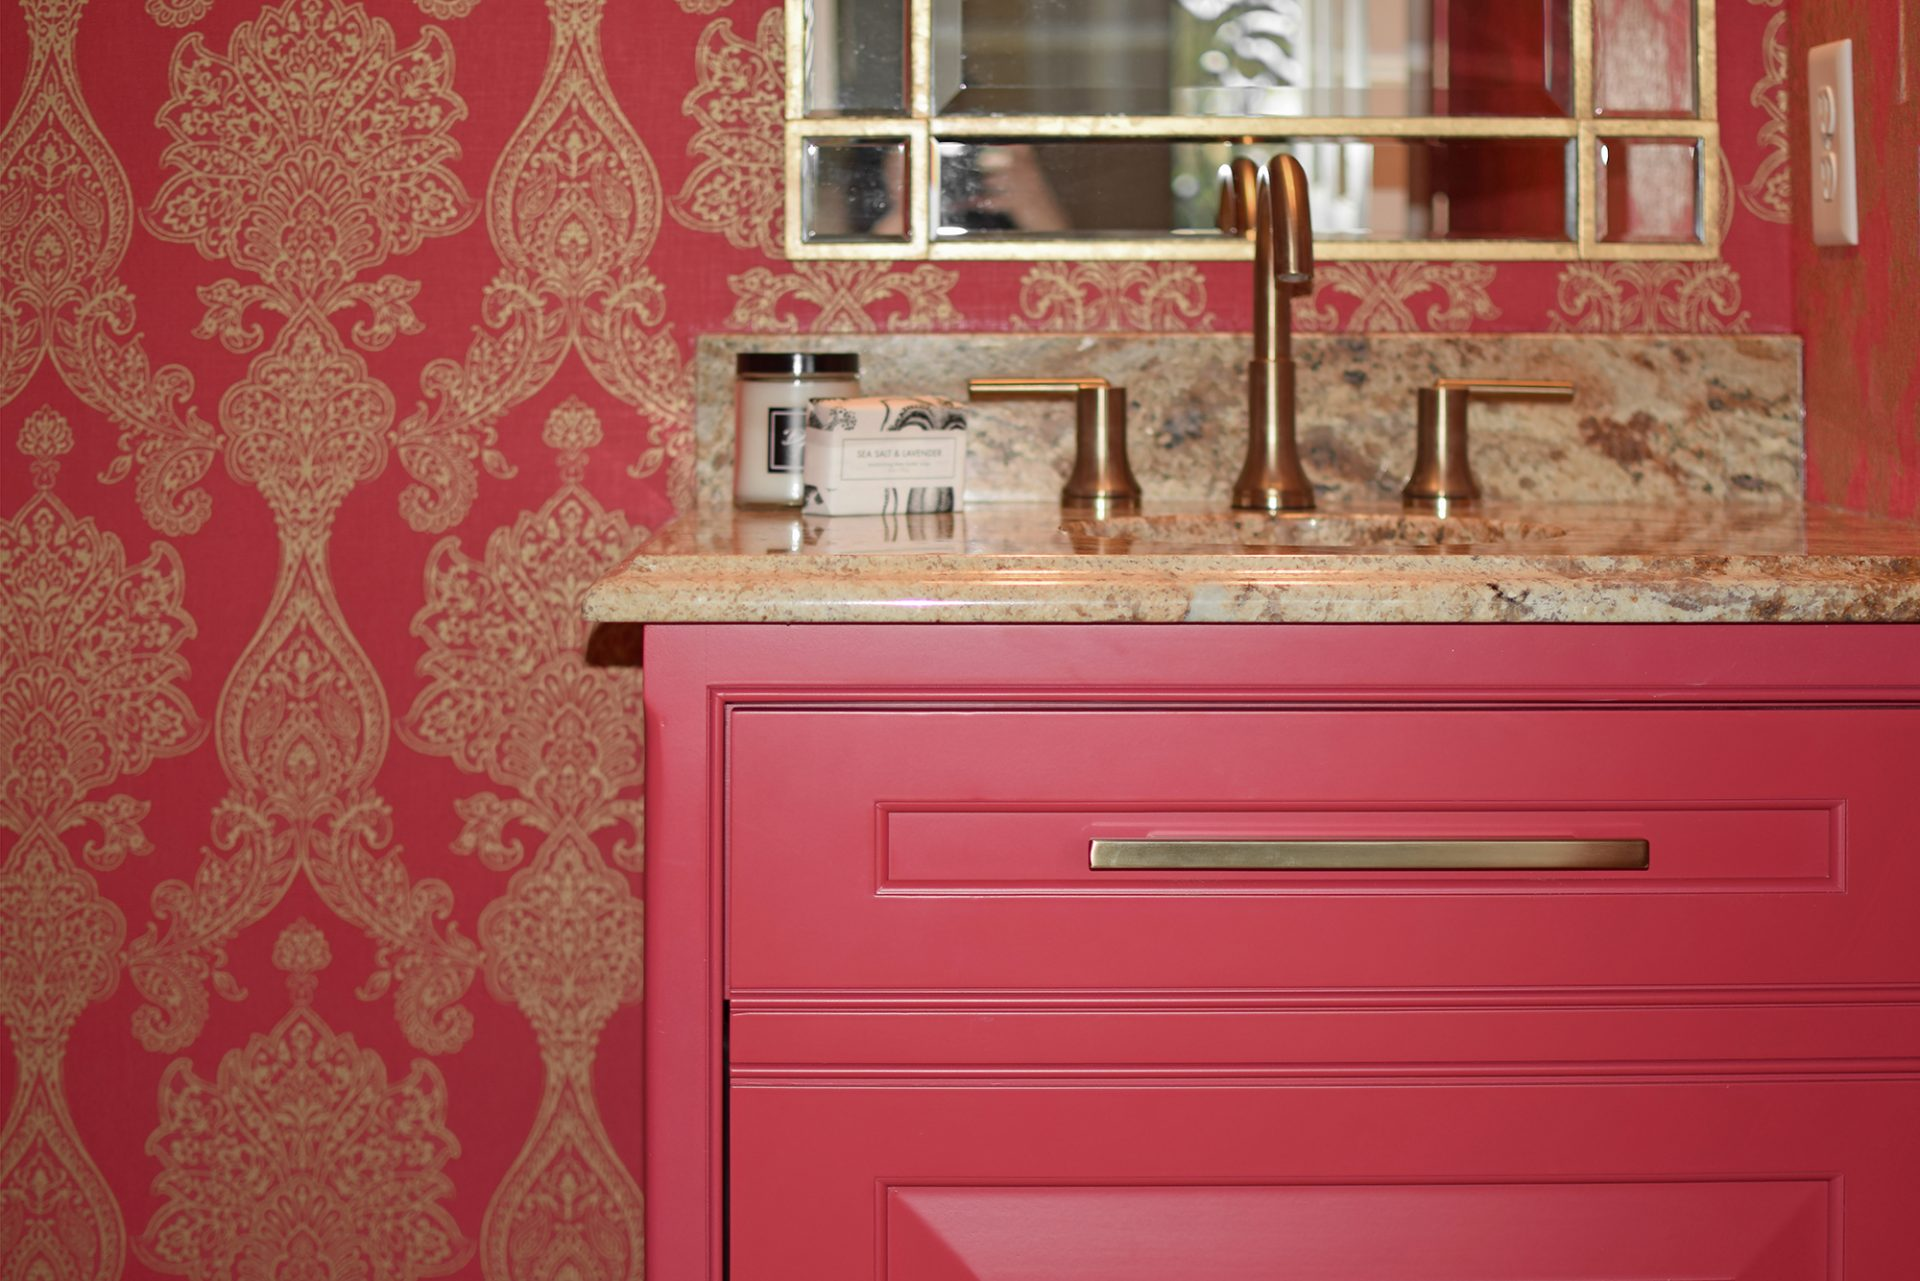 Bath, Dublin, Dave Fox, Remodel, pink, wall covering, gold accents, custom cabinets, small bath